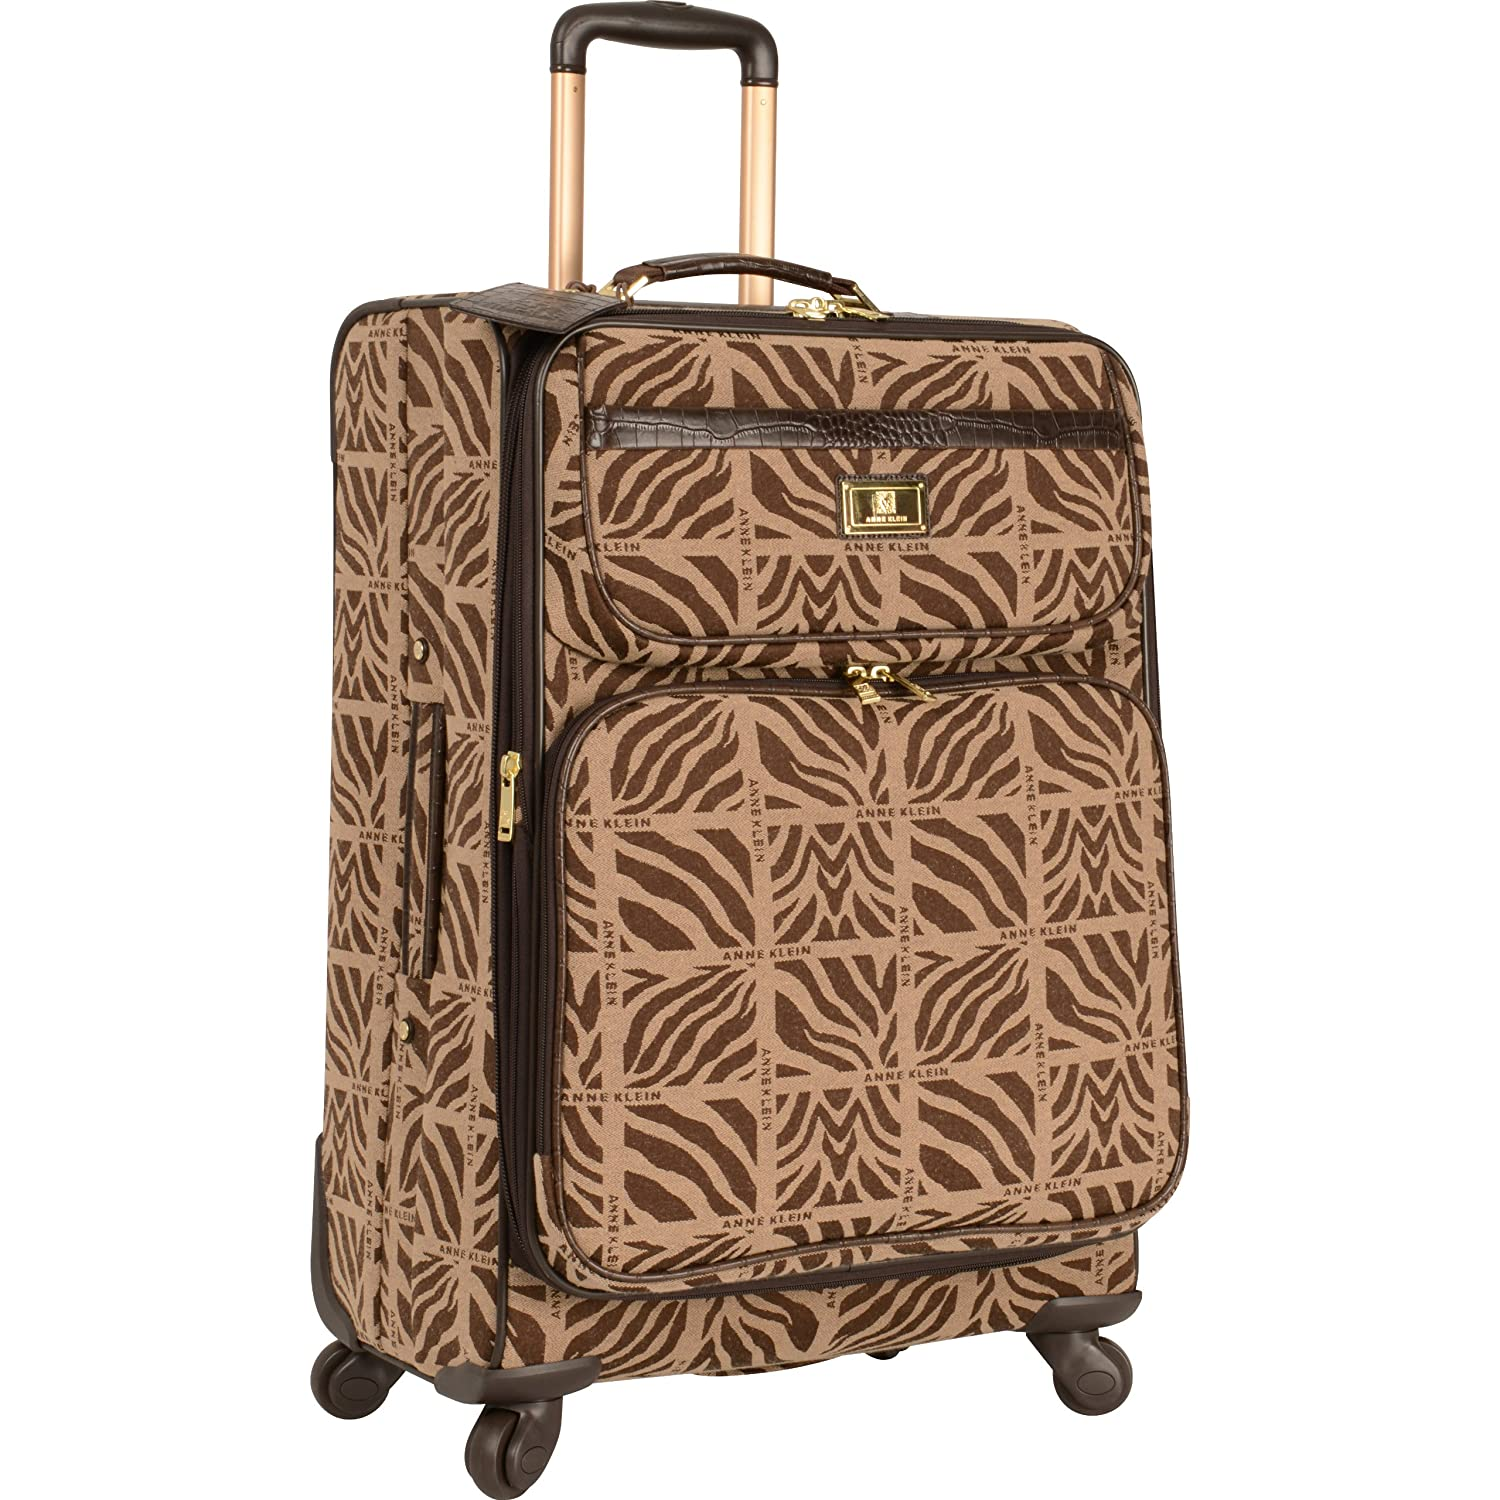 Anne Klein Mane Line 24-Inch Expandable Spinner, Tan/Brown, One Size 2765C03